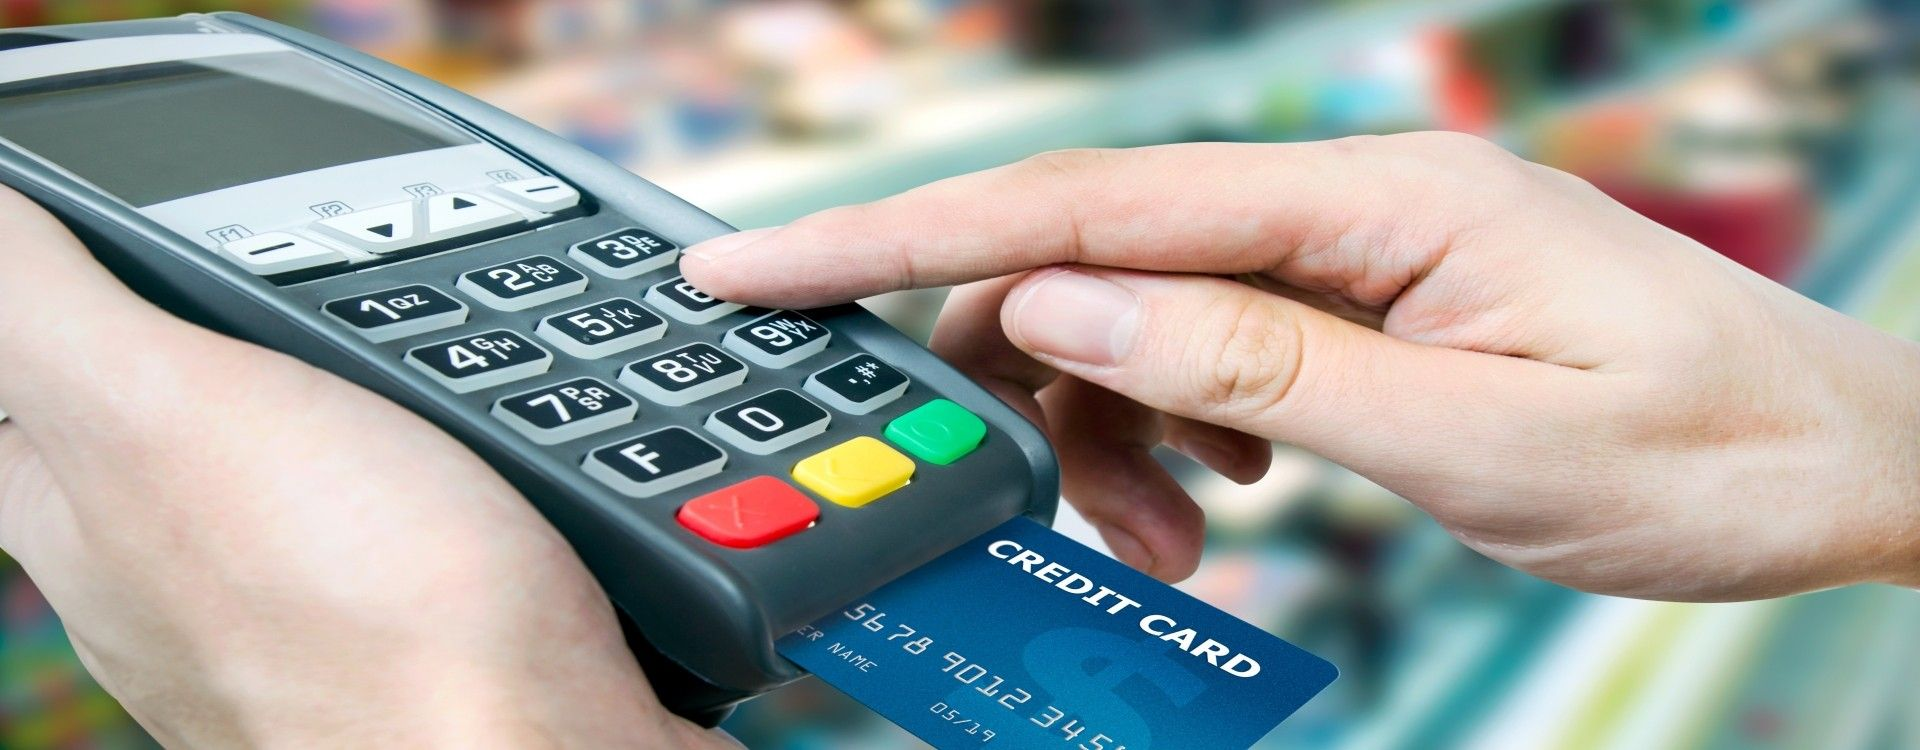 credit card terminal meaning